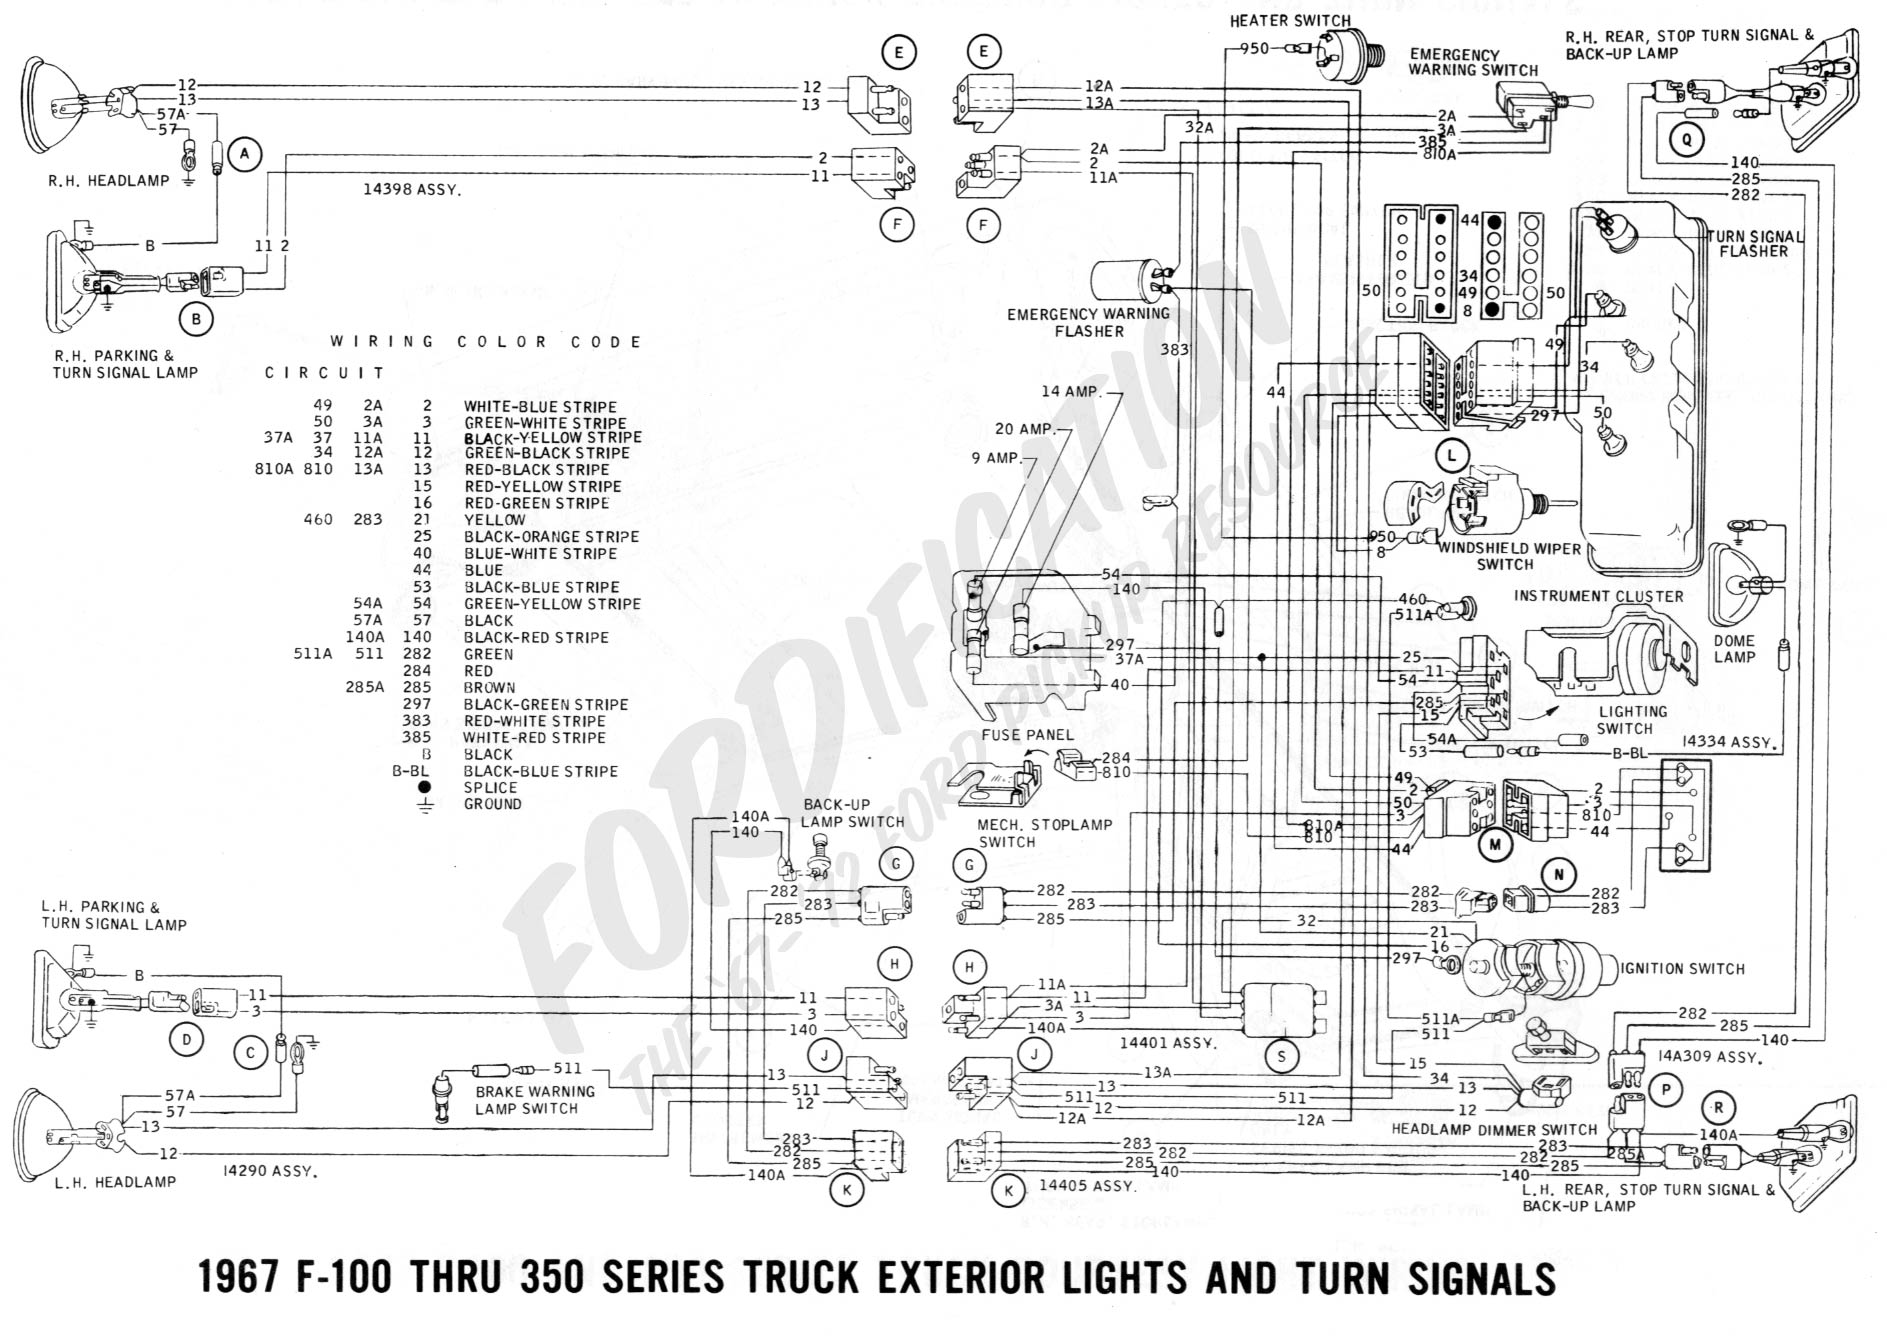 1966 Ford Mustang Fuse Box Diagram Worksheet And Wiring 1994 1967 Detailed Schematics Rh Mrskindsclass Com 1963 Thunderbird 1986